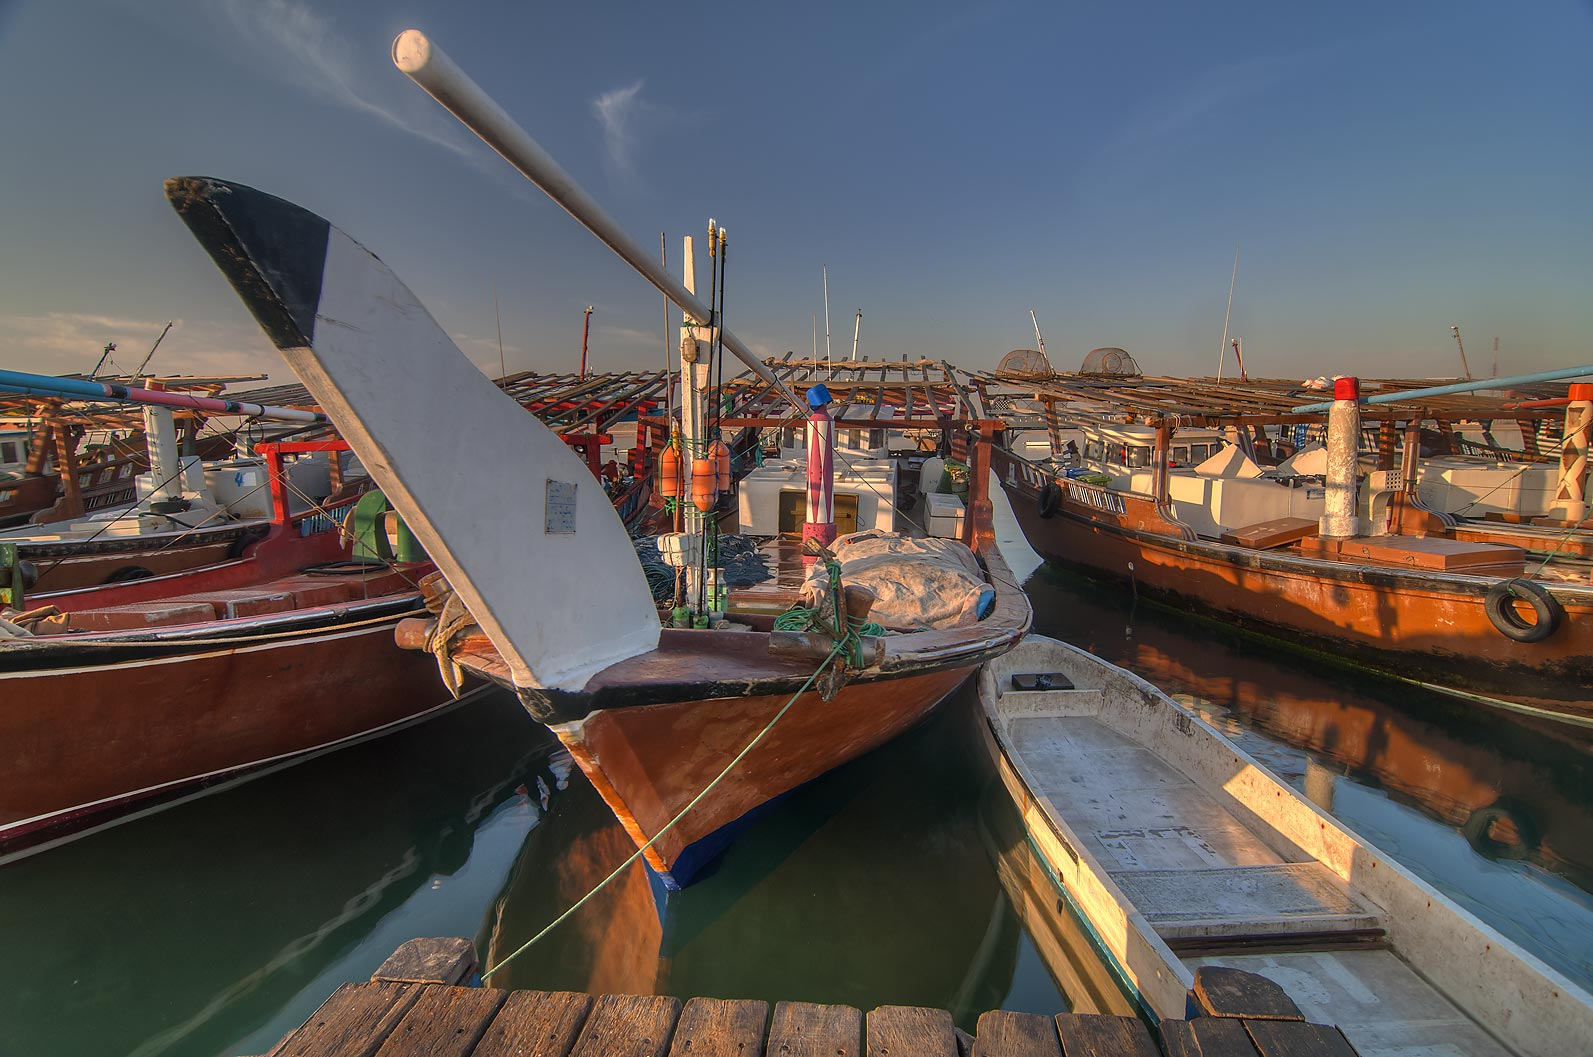 Prow of dhow fishing boat on a pier in Al Wakra. Qatar